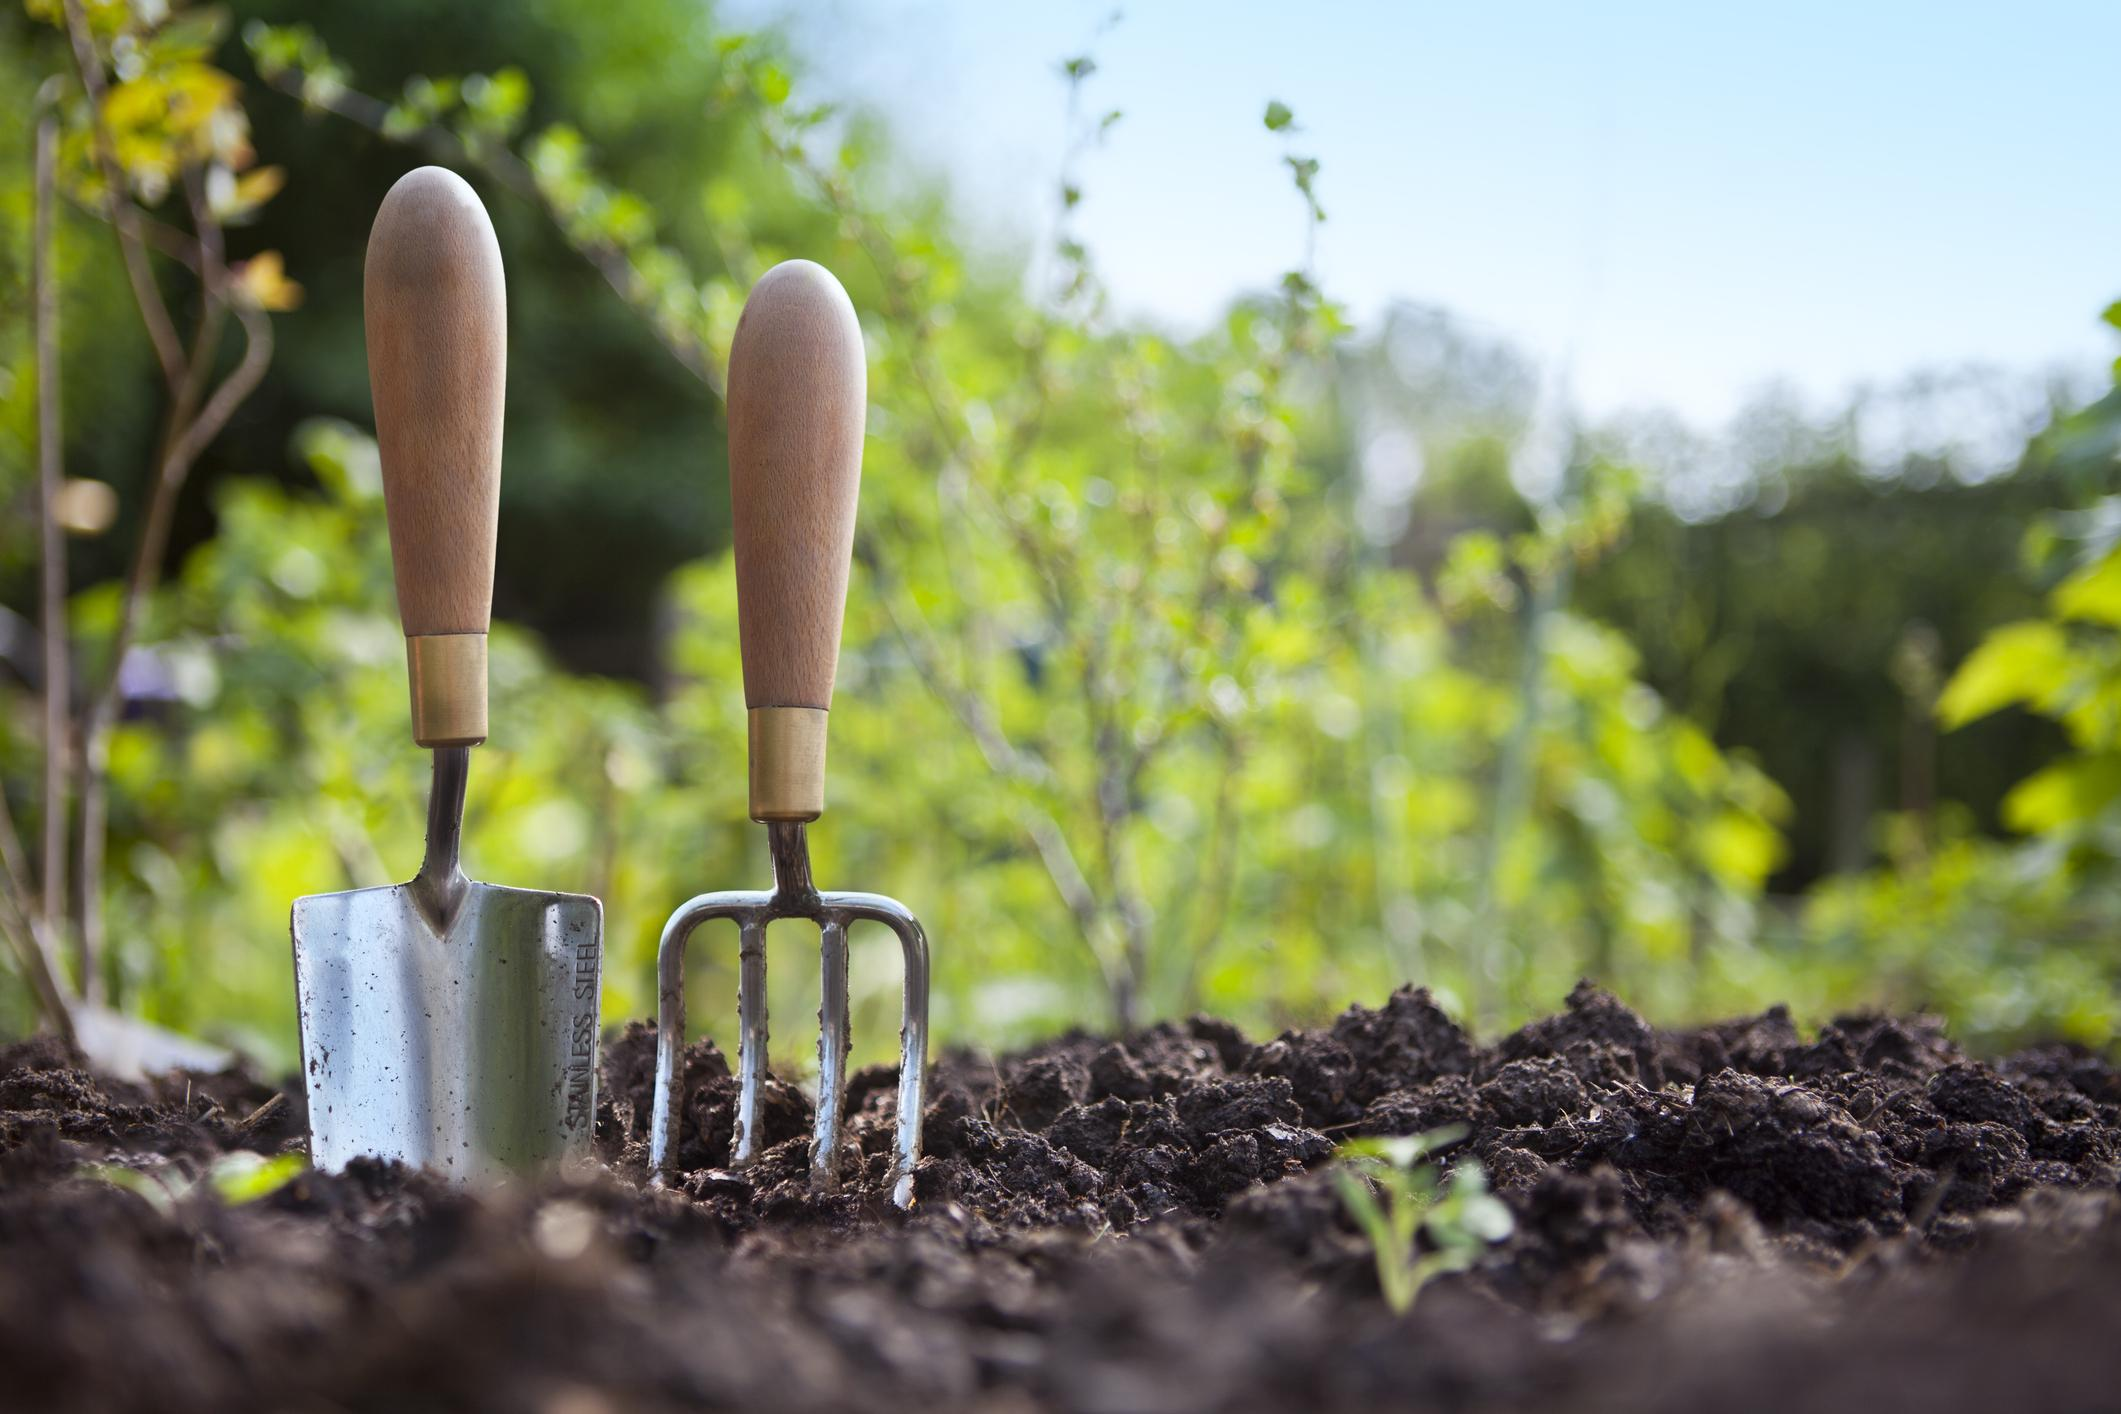 How to make the most of your garden during lockdown | The Independent